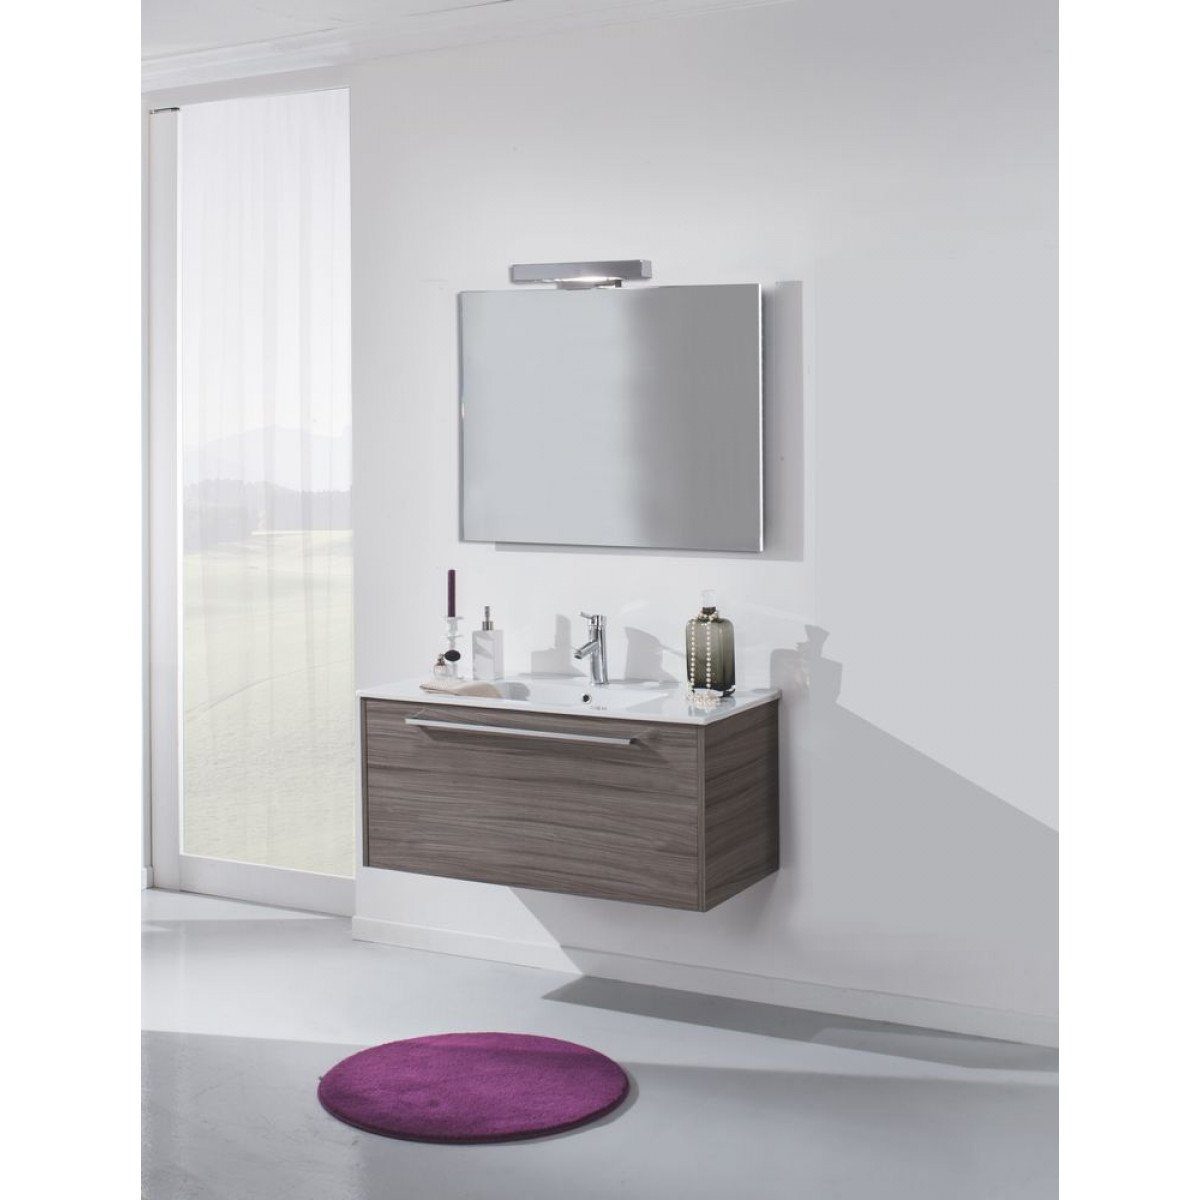 Meuble Salle De Bain Tft Home Furniture ~ Meuble De Salle De Bain Hw02 Pierre Tft Home Furniture Amazon Fr